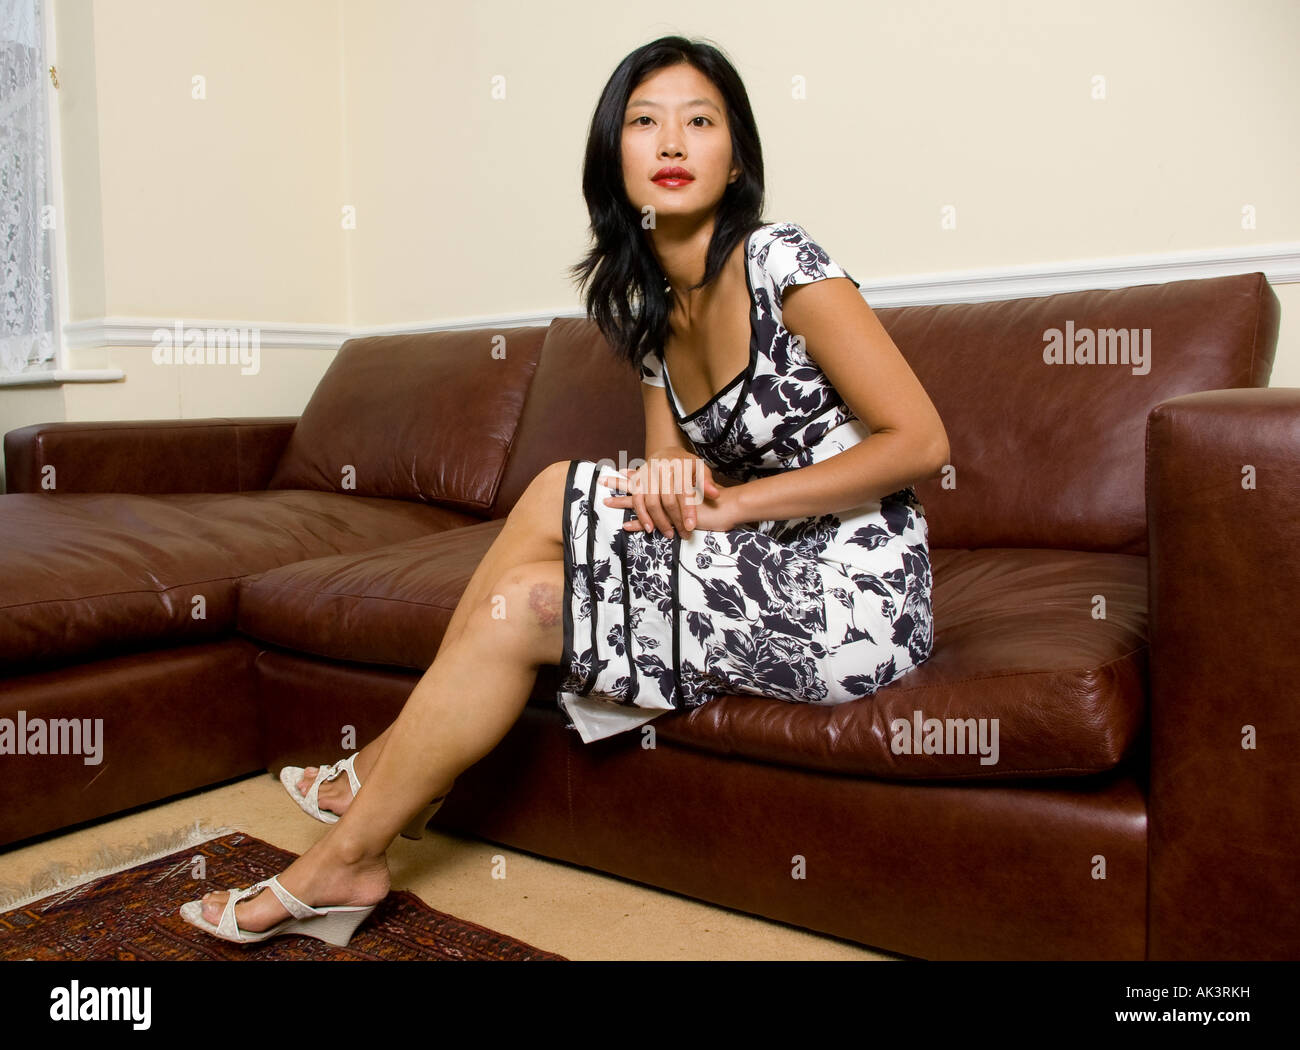 Mature women long legs